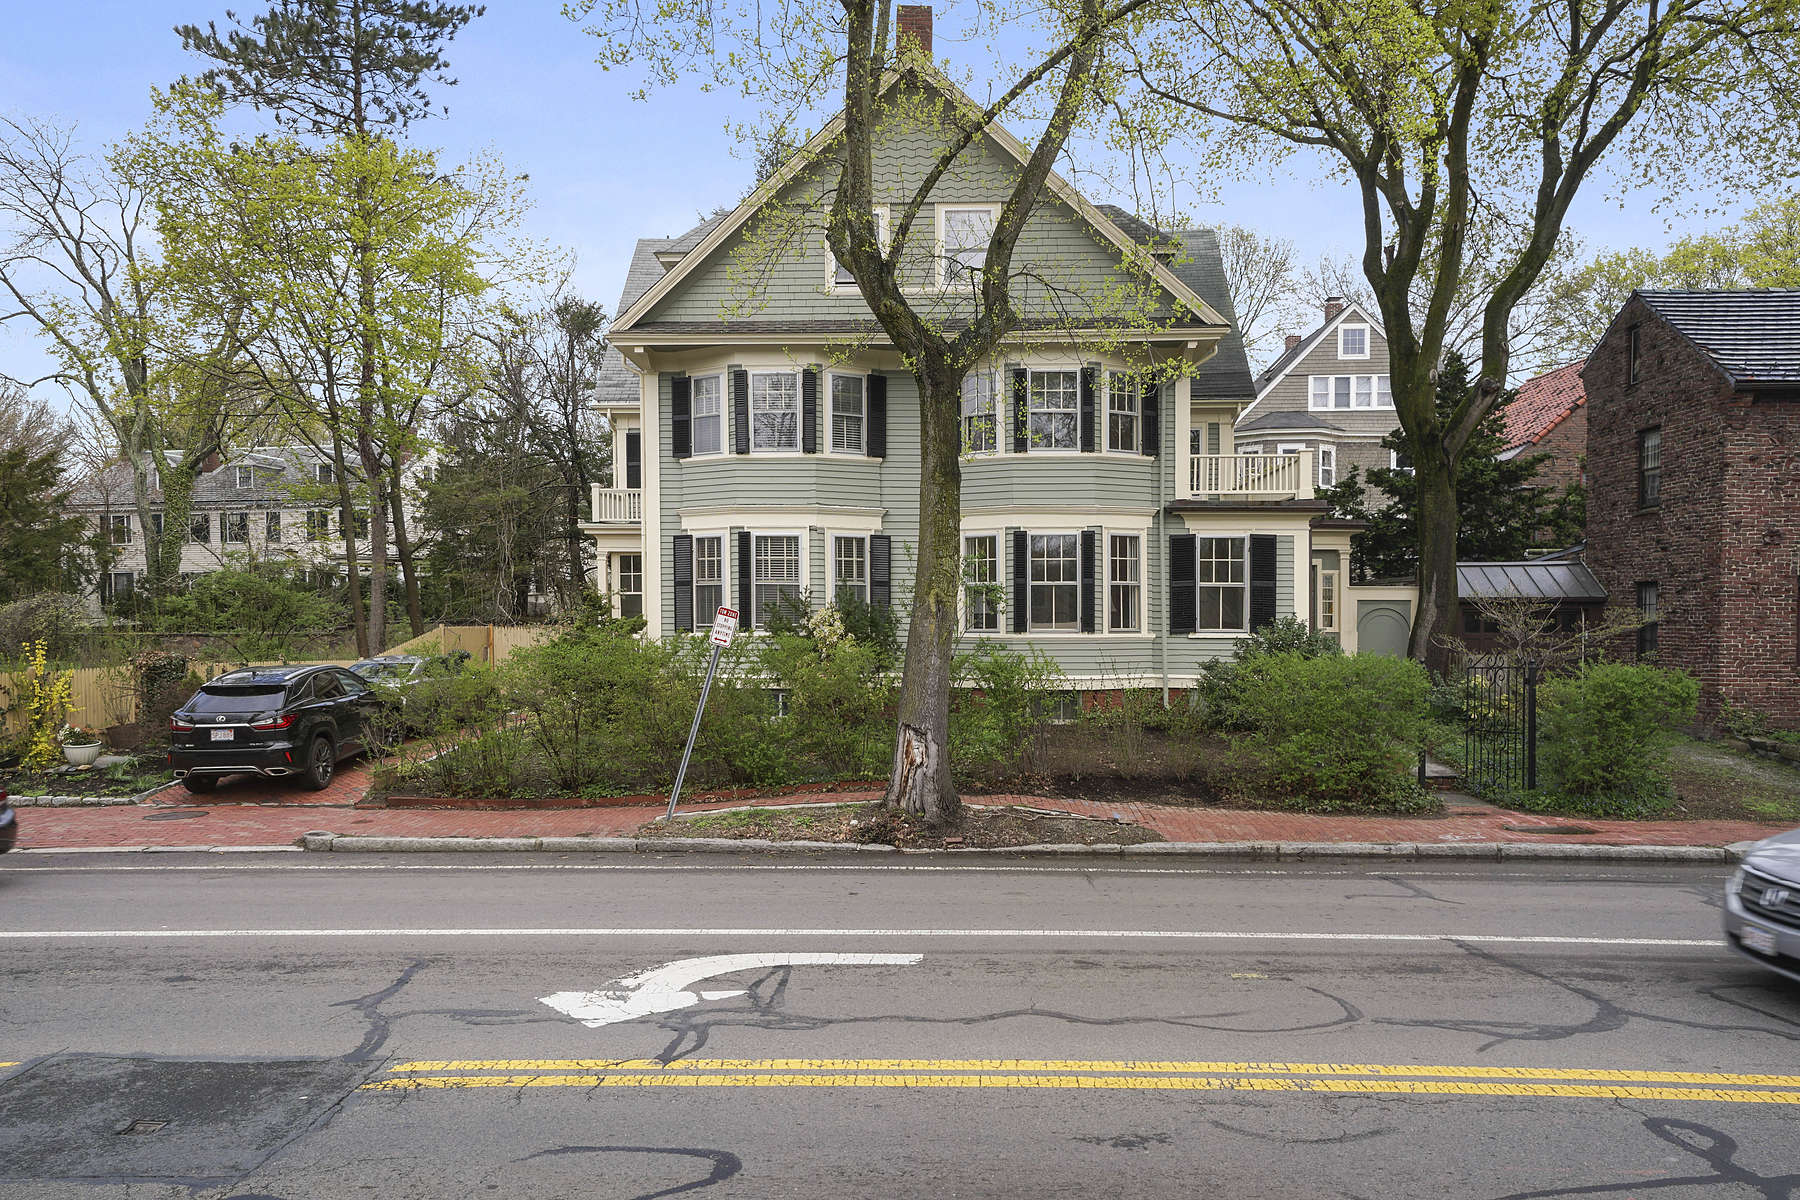 Single Family Home for Active at Beautiful Residence On Prestigious Historic Brattle Street 213 Brattle Street Cambridge, Massachusetts 02138 United States